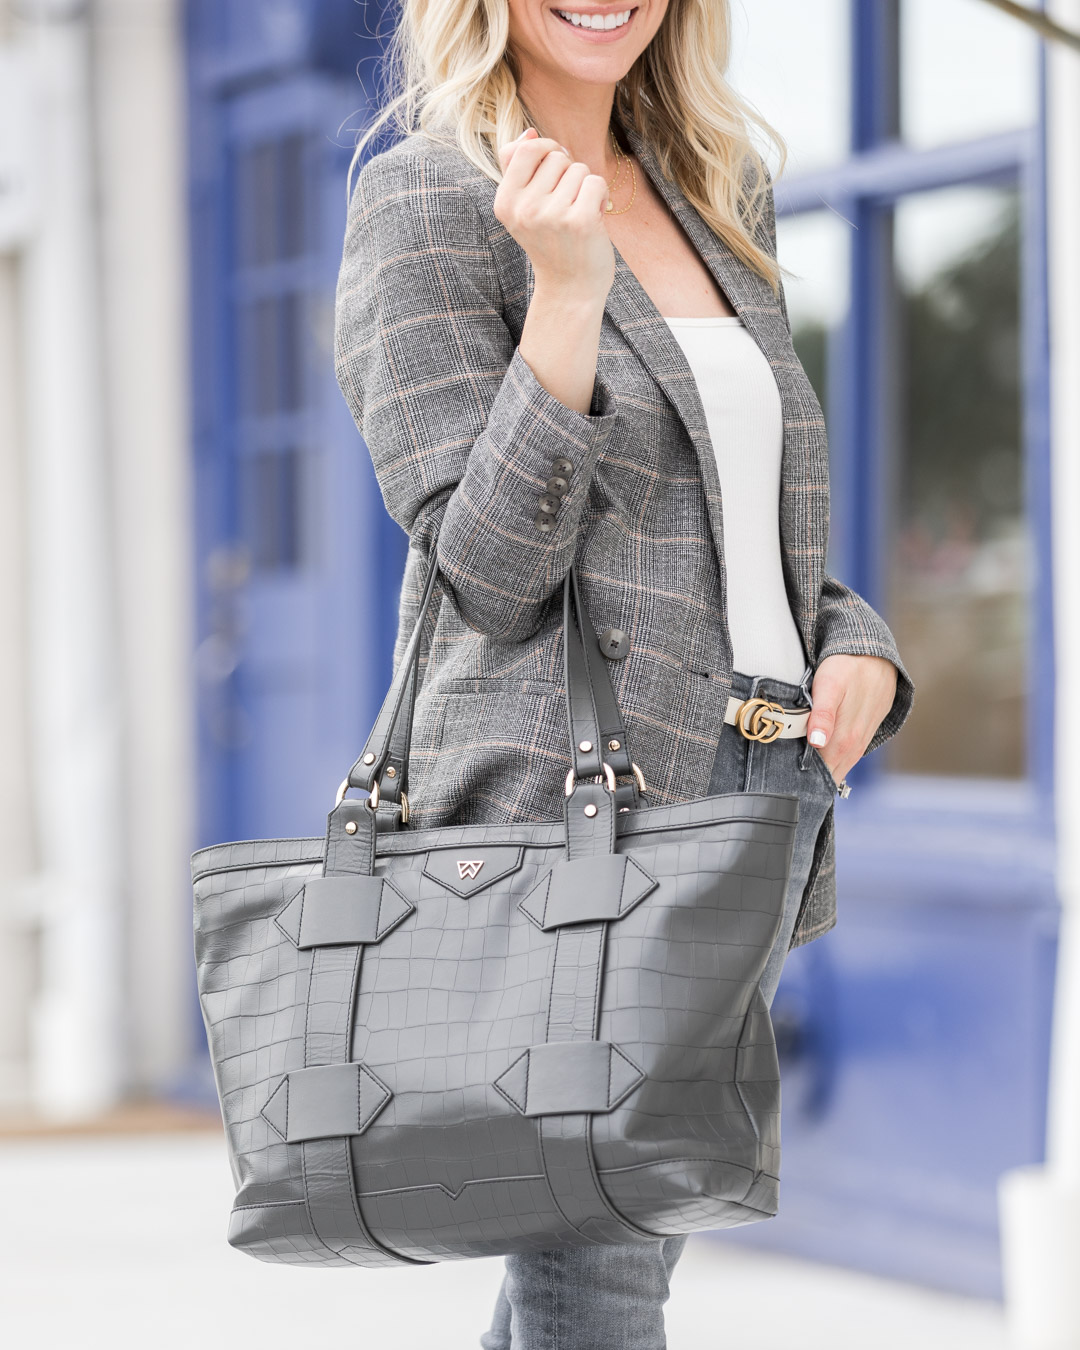 neutral-gray-tote-bag-from-ky-the-glamorous-gal